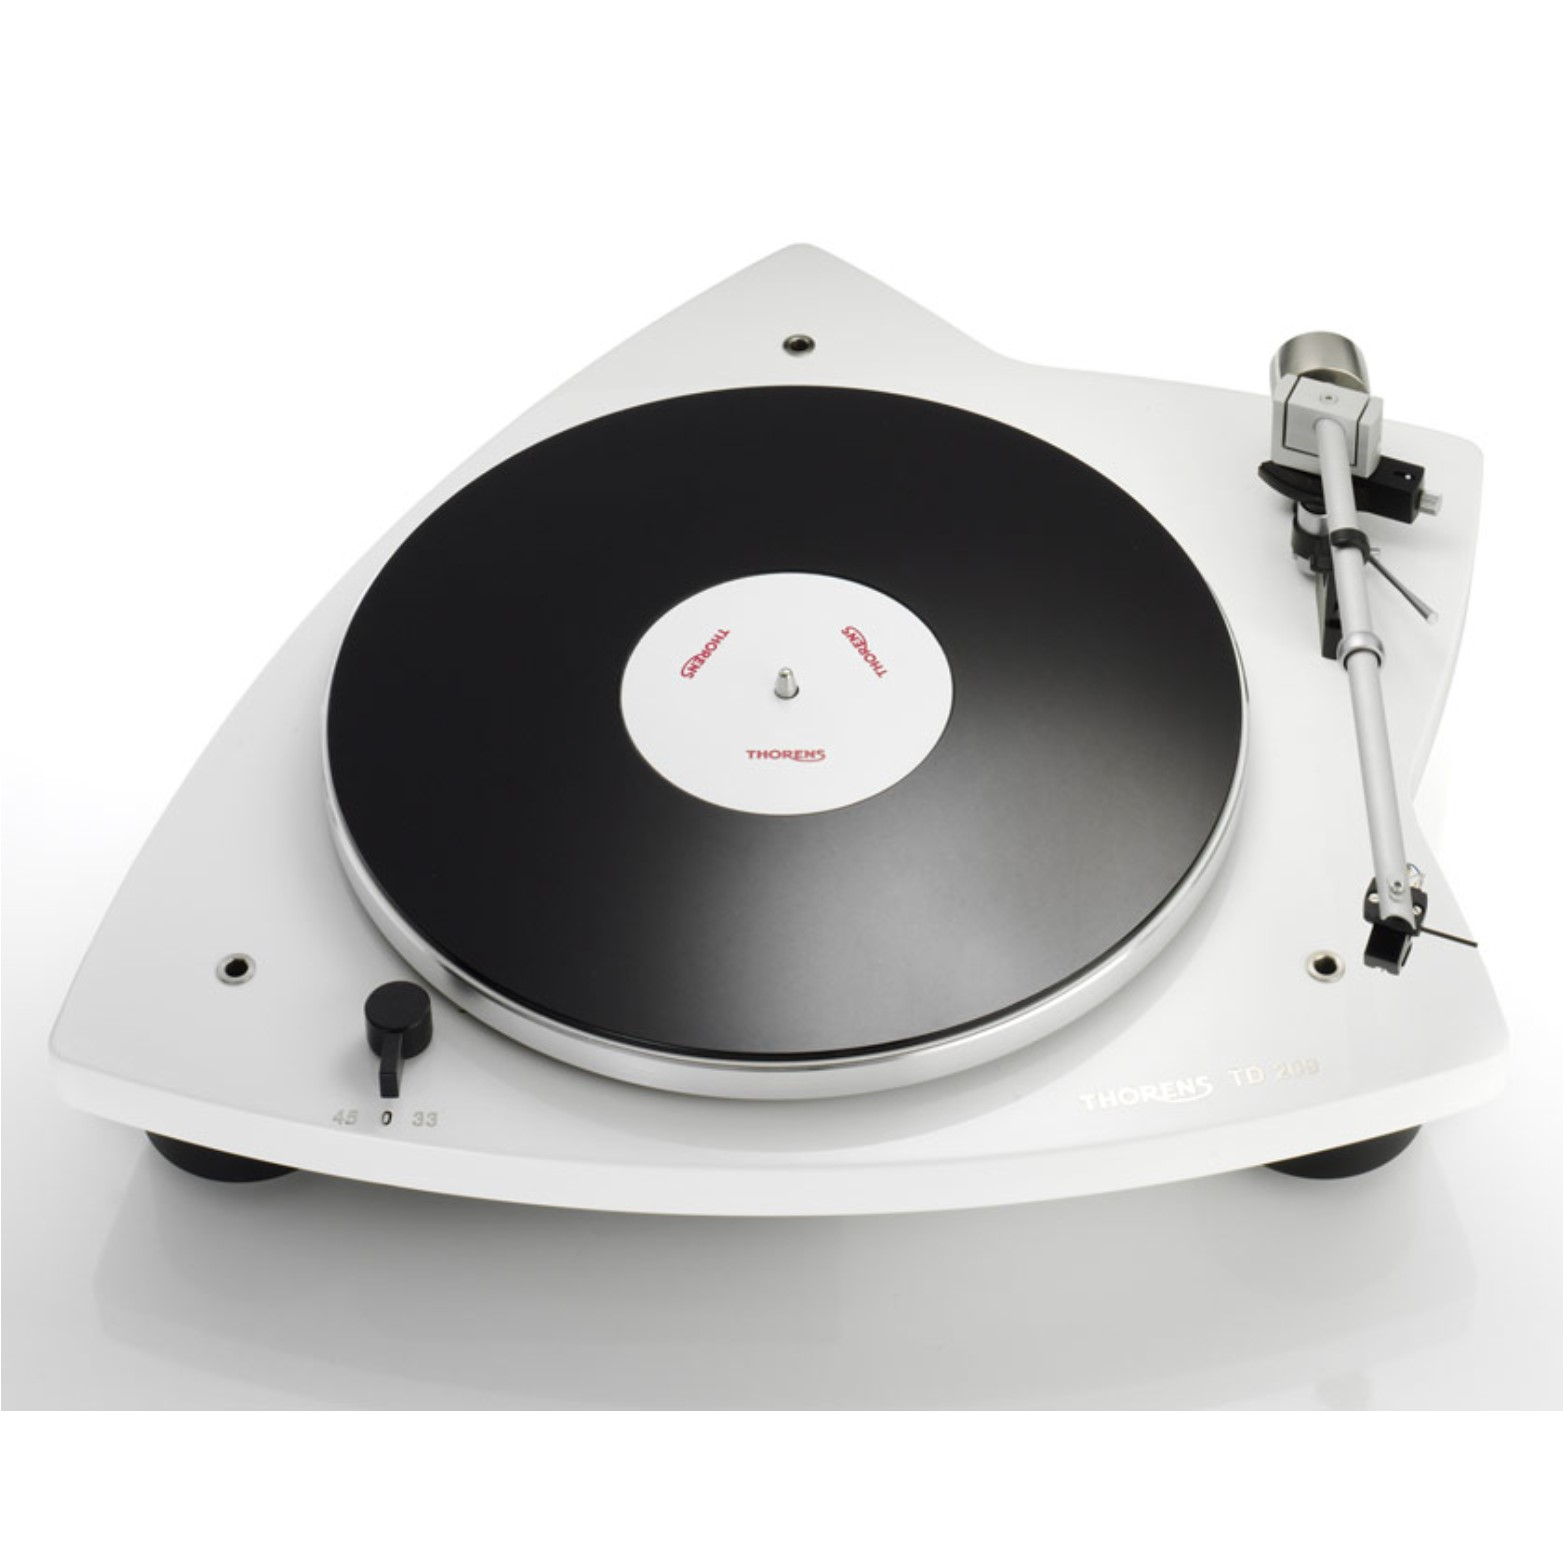 Thorens TD 209 Belt-Drive Turntable